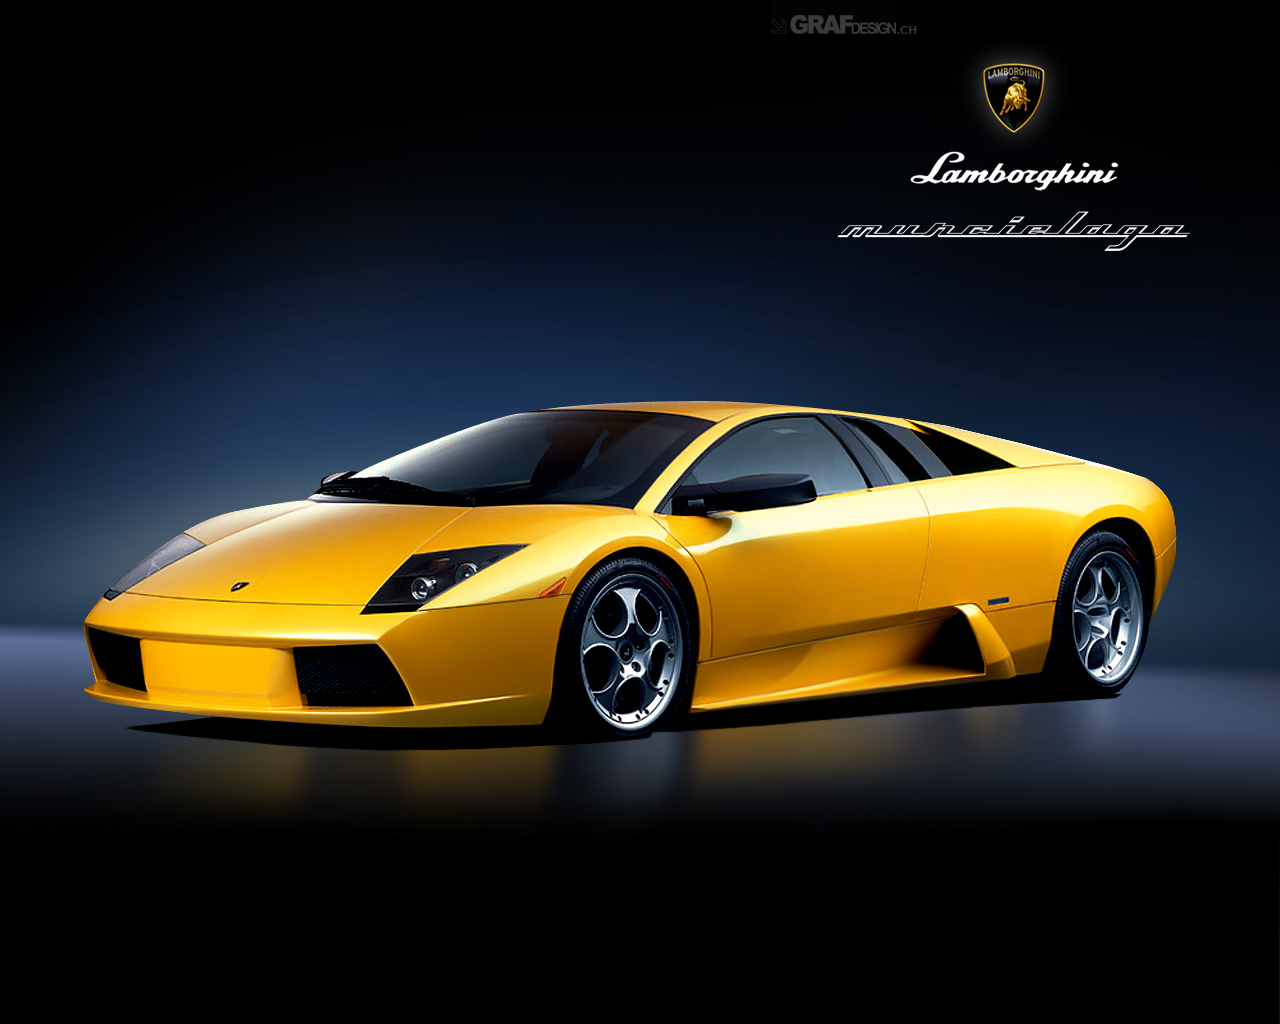 Yellow Lamborghini Murchi Wallpaper Desktop 1280x1024